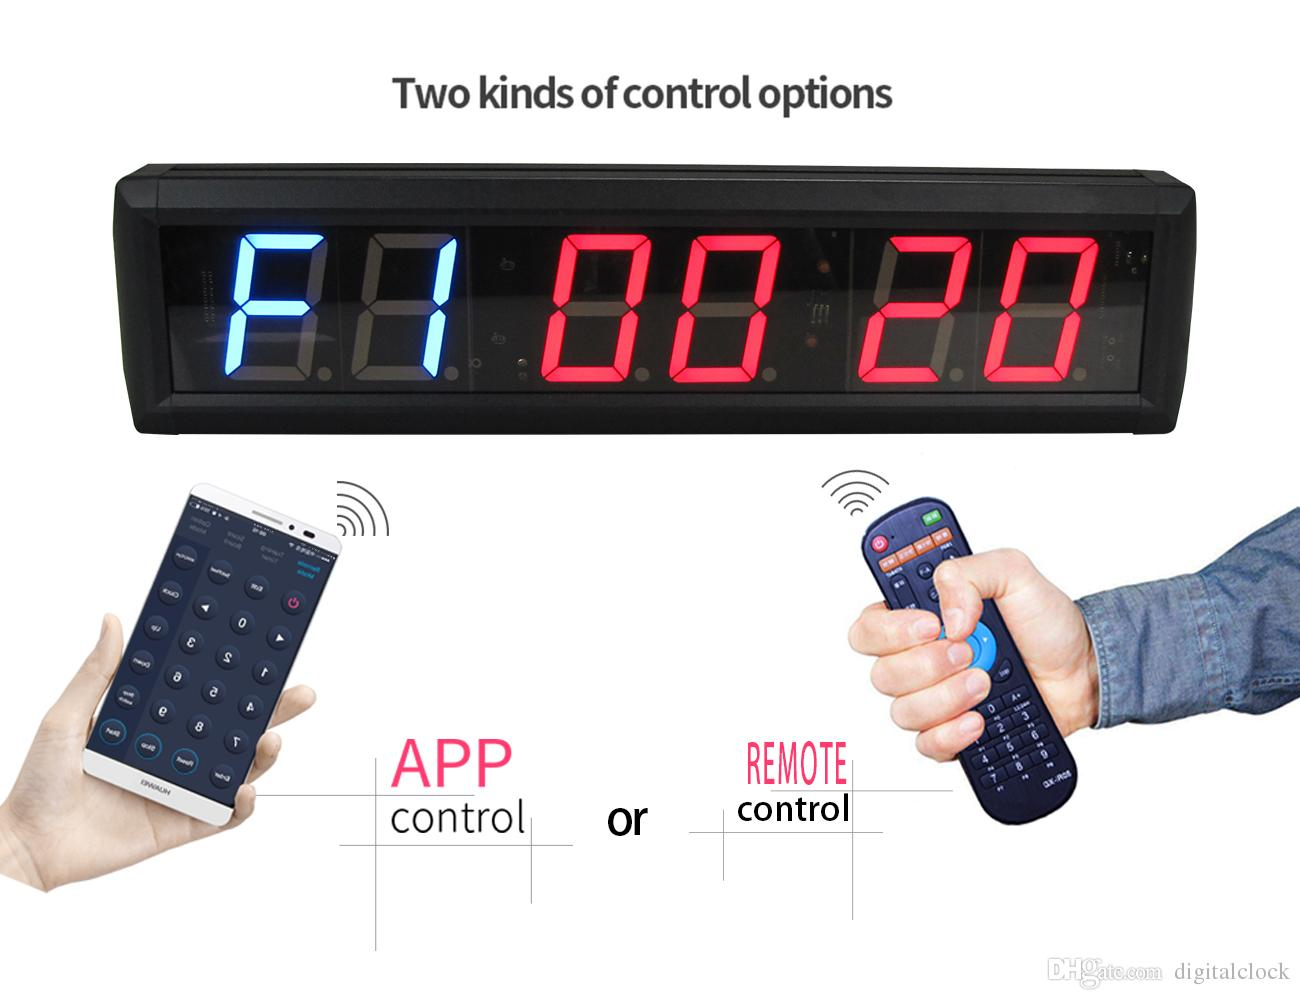 [GANXIN]2.3 inch Gym Crossfit Interval Training Timer Garage Timer Workout Timing Countdown Wall Clock with IR Remote control